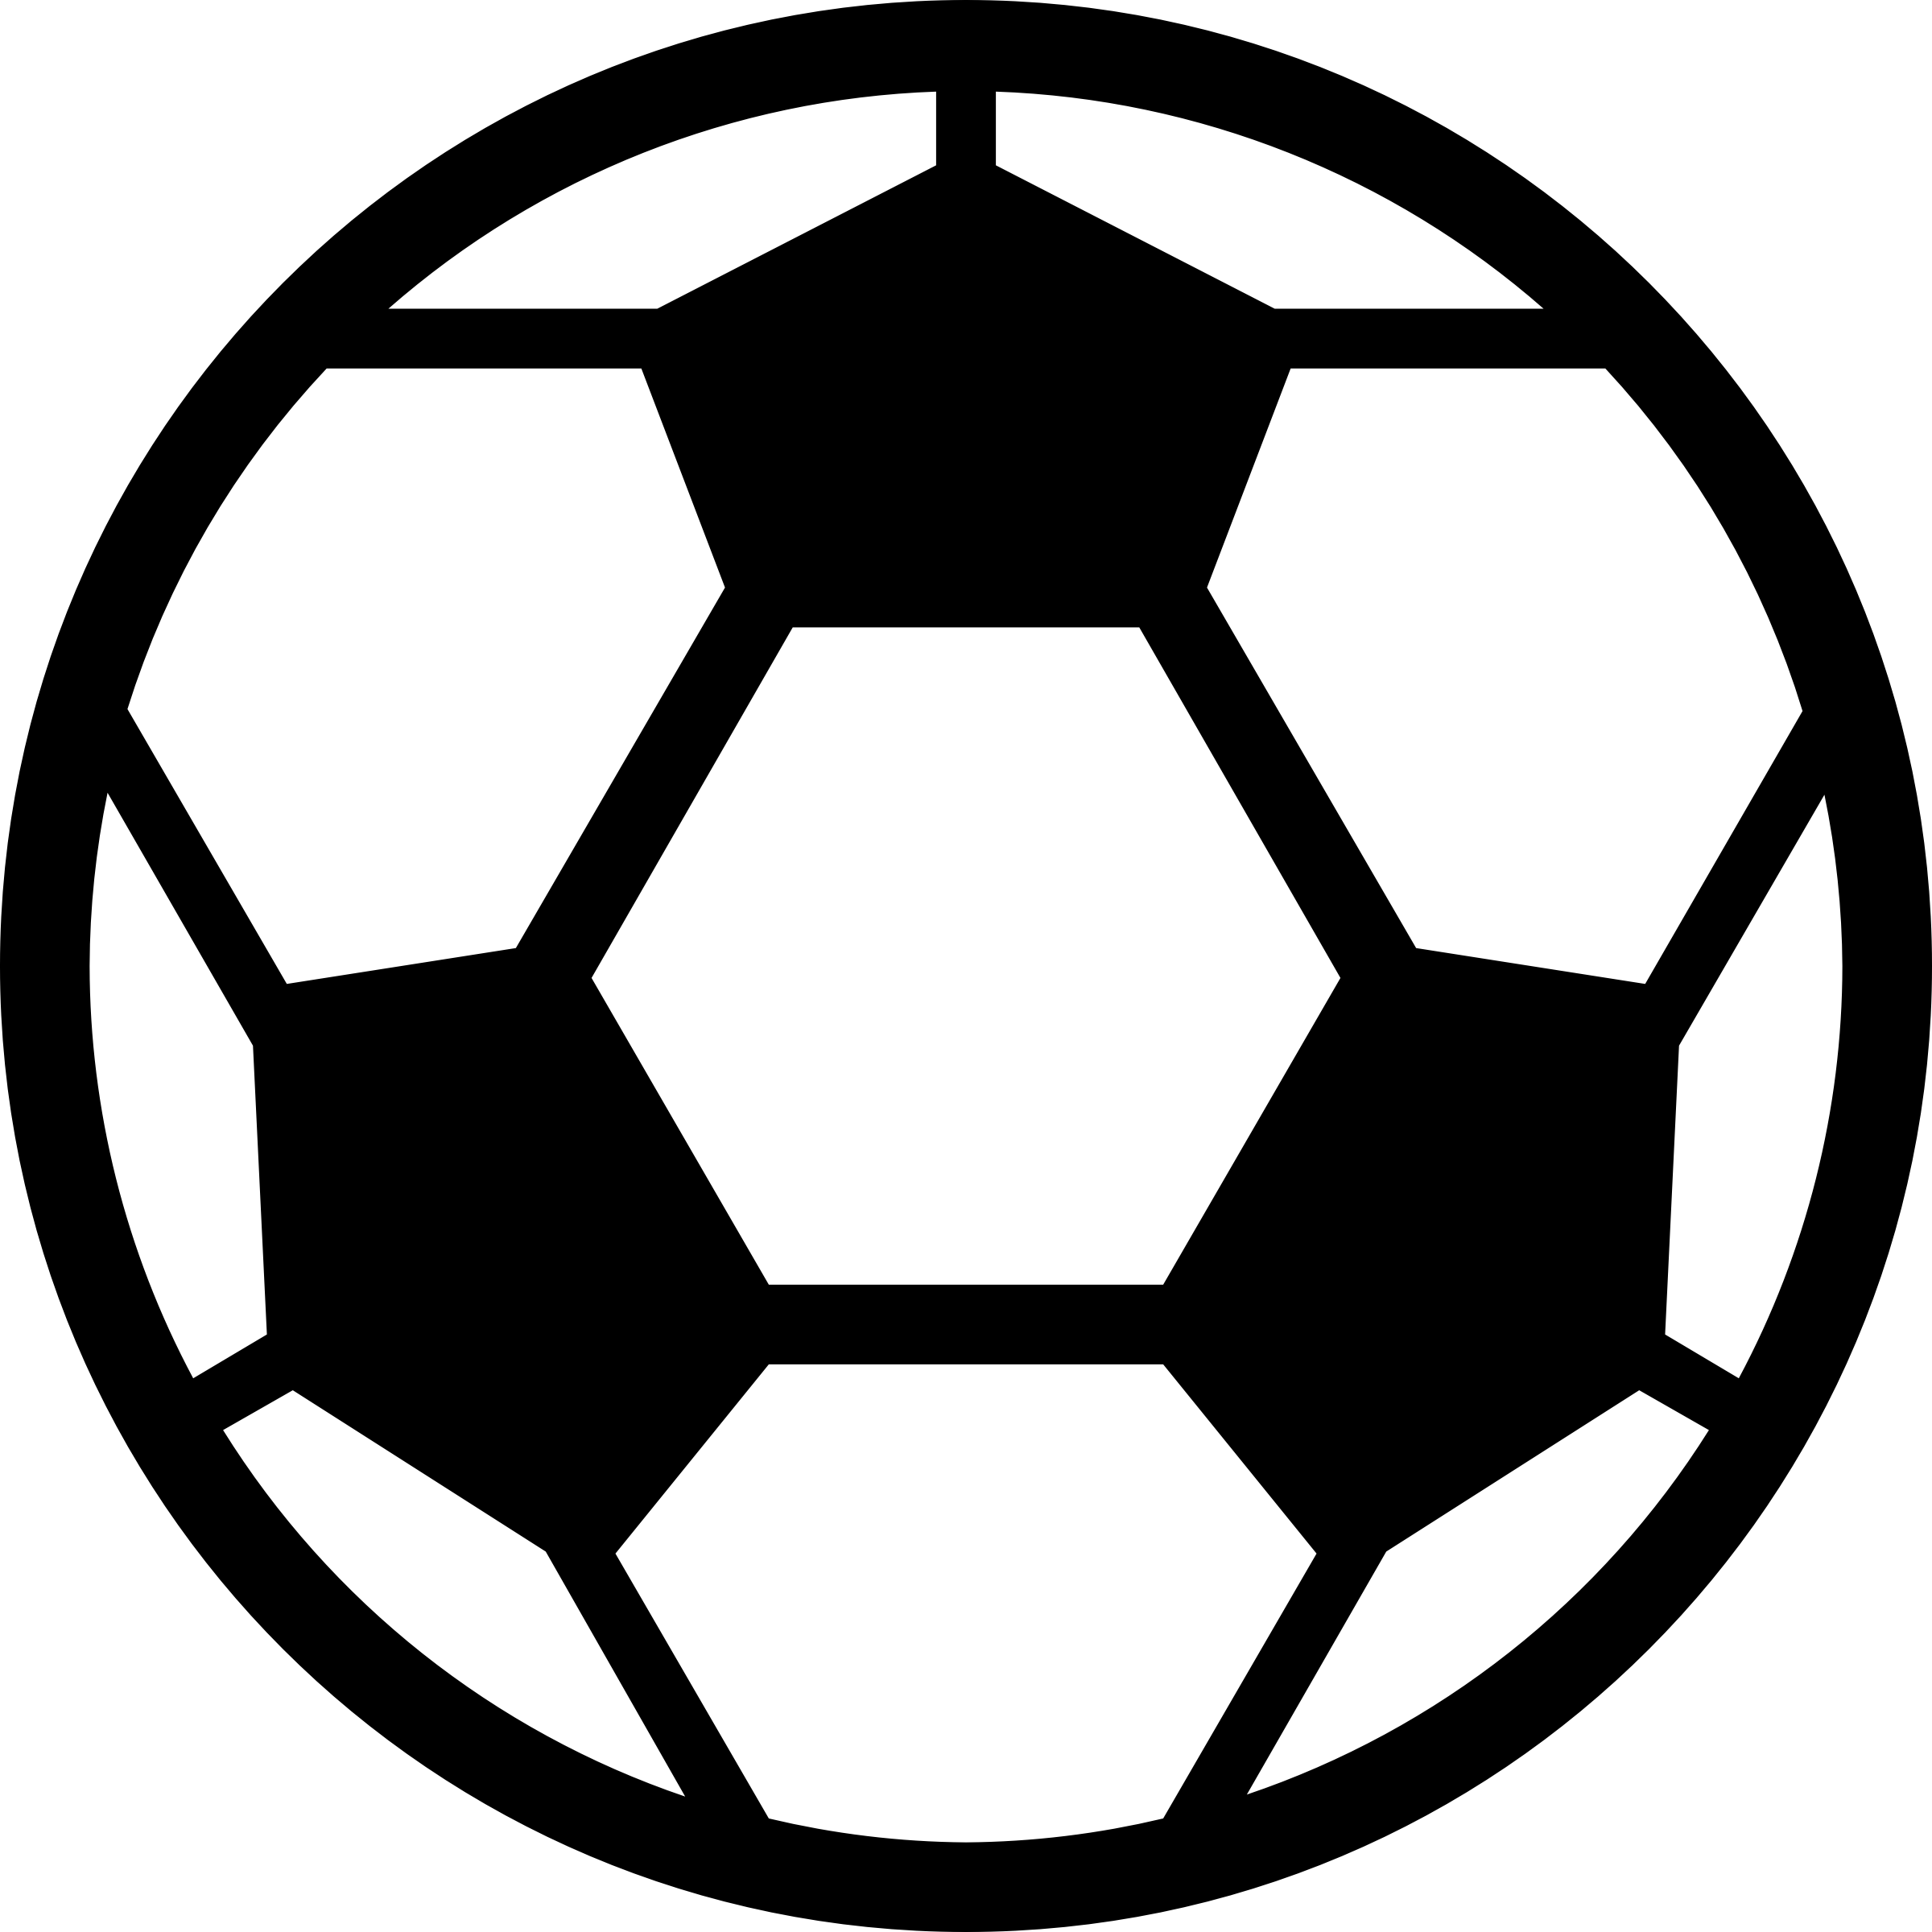 Soccer ball clipart big. Image png